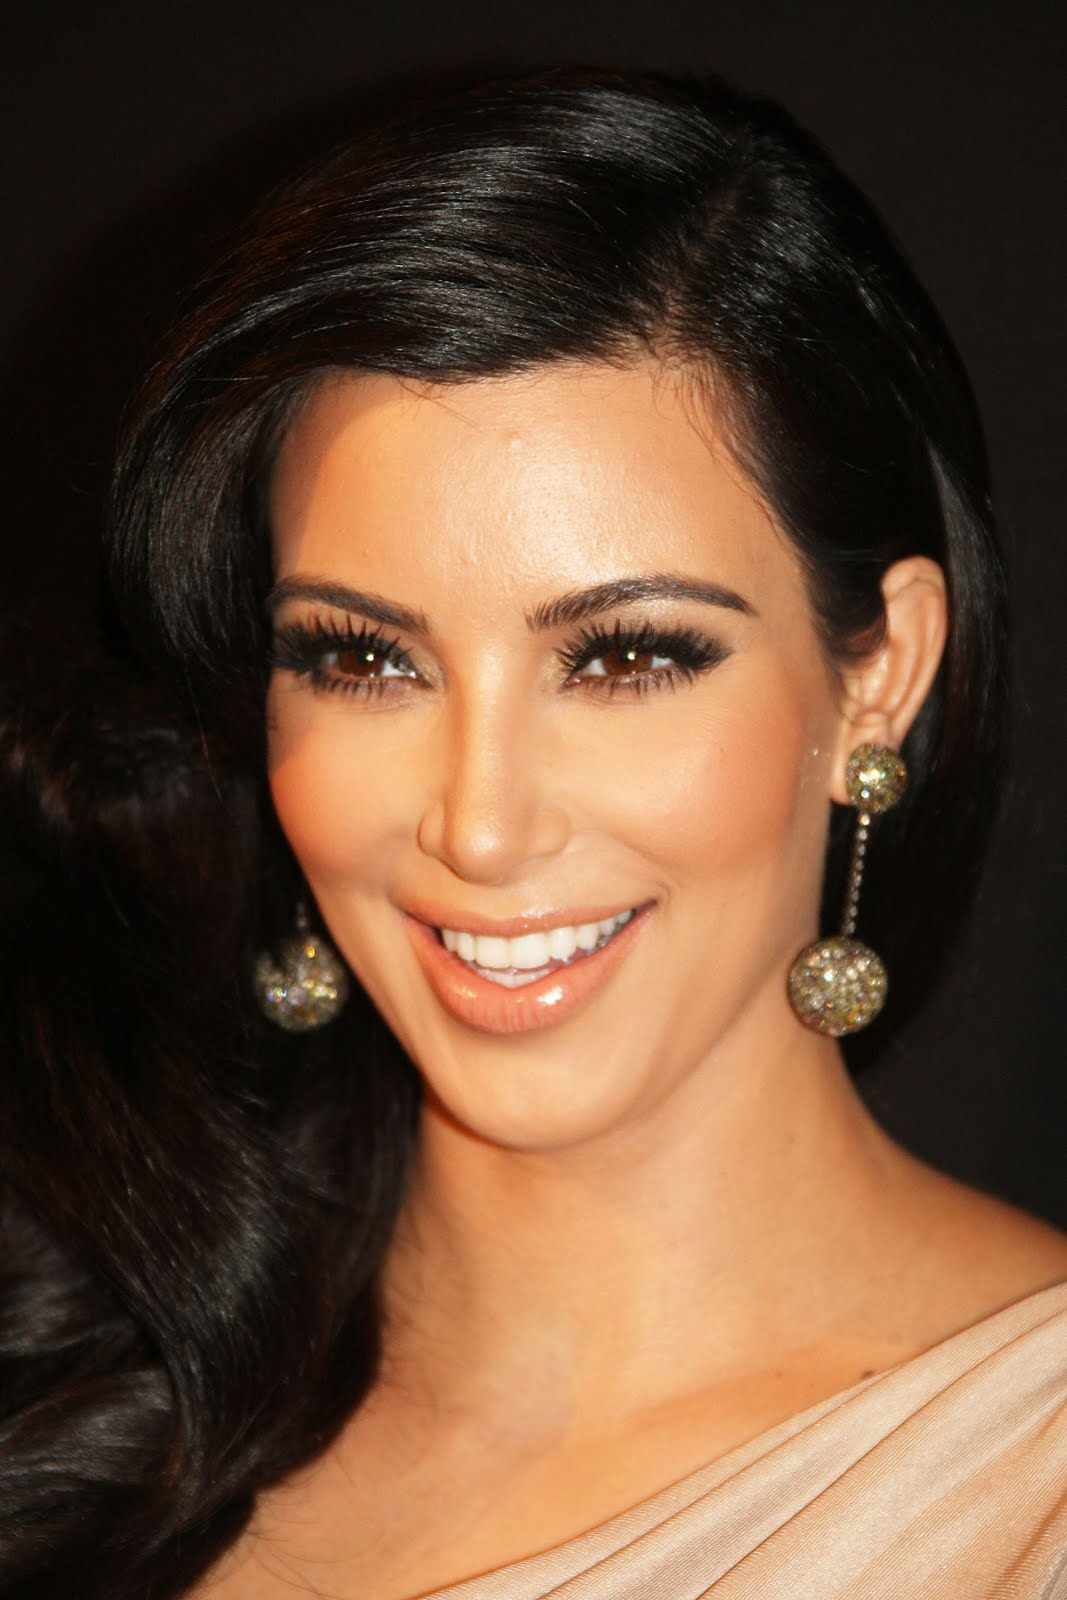 Kim Kardashian Interviews Kylie Jenner About Her Best: Fixing Smiles